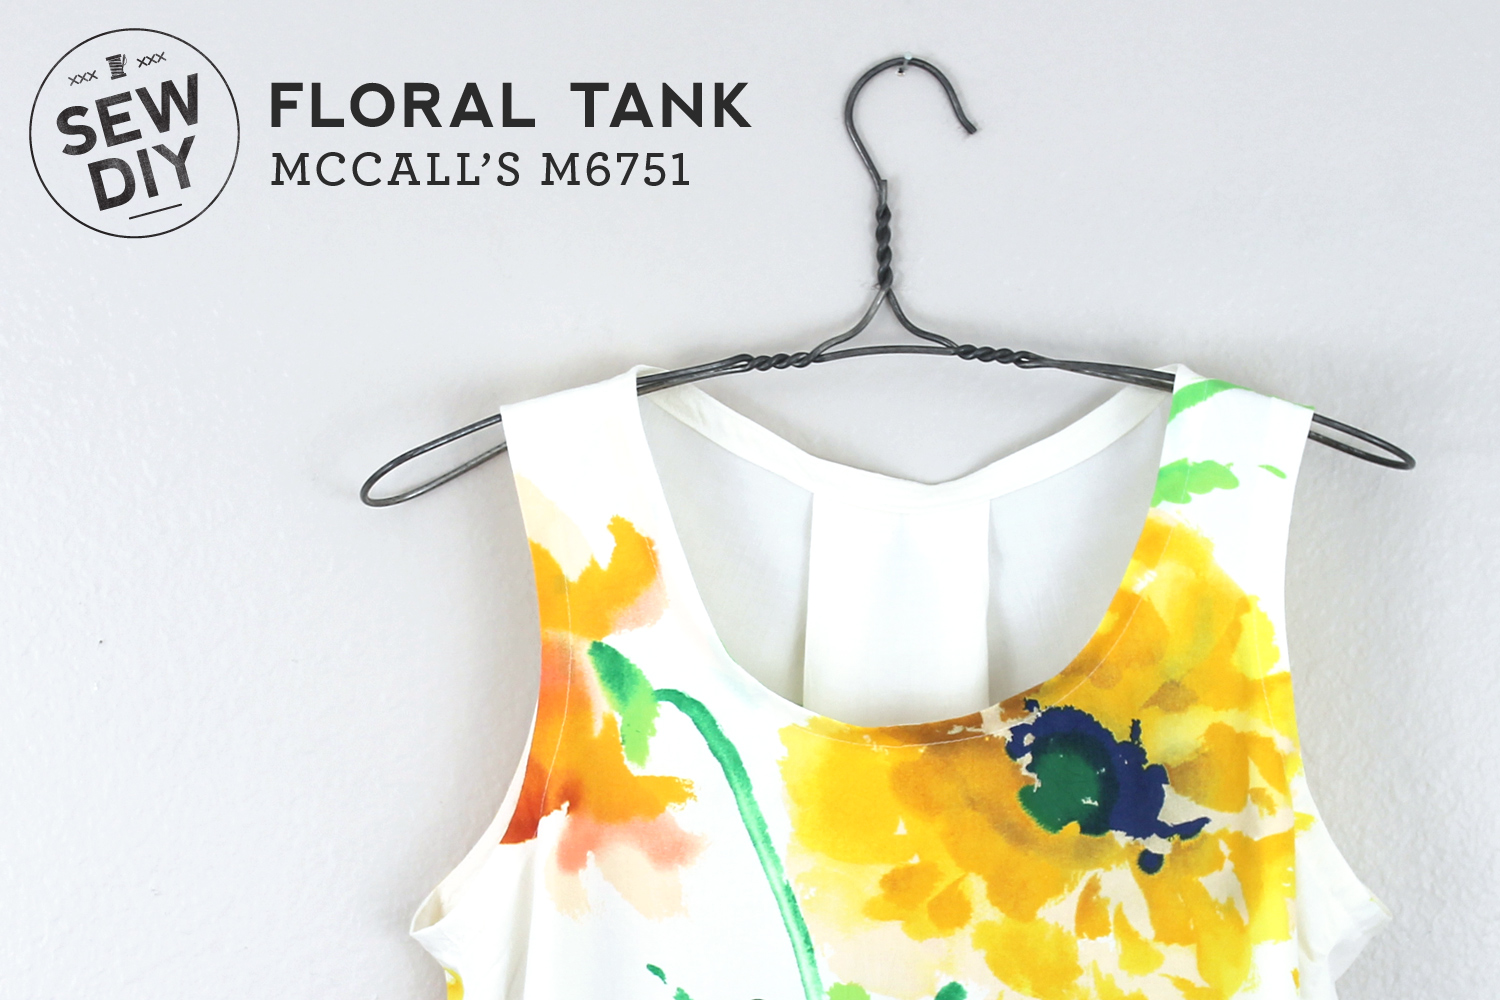 Floral Tank McCall's M6751 – Sew DIY